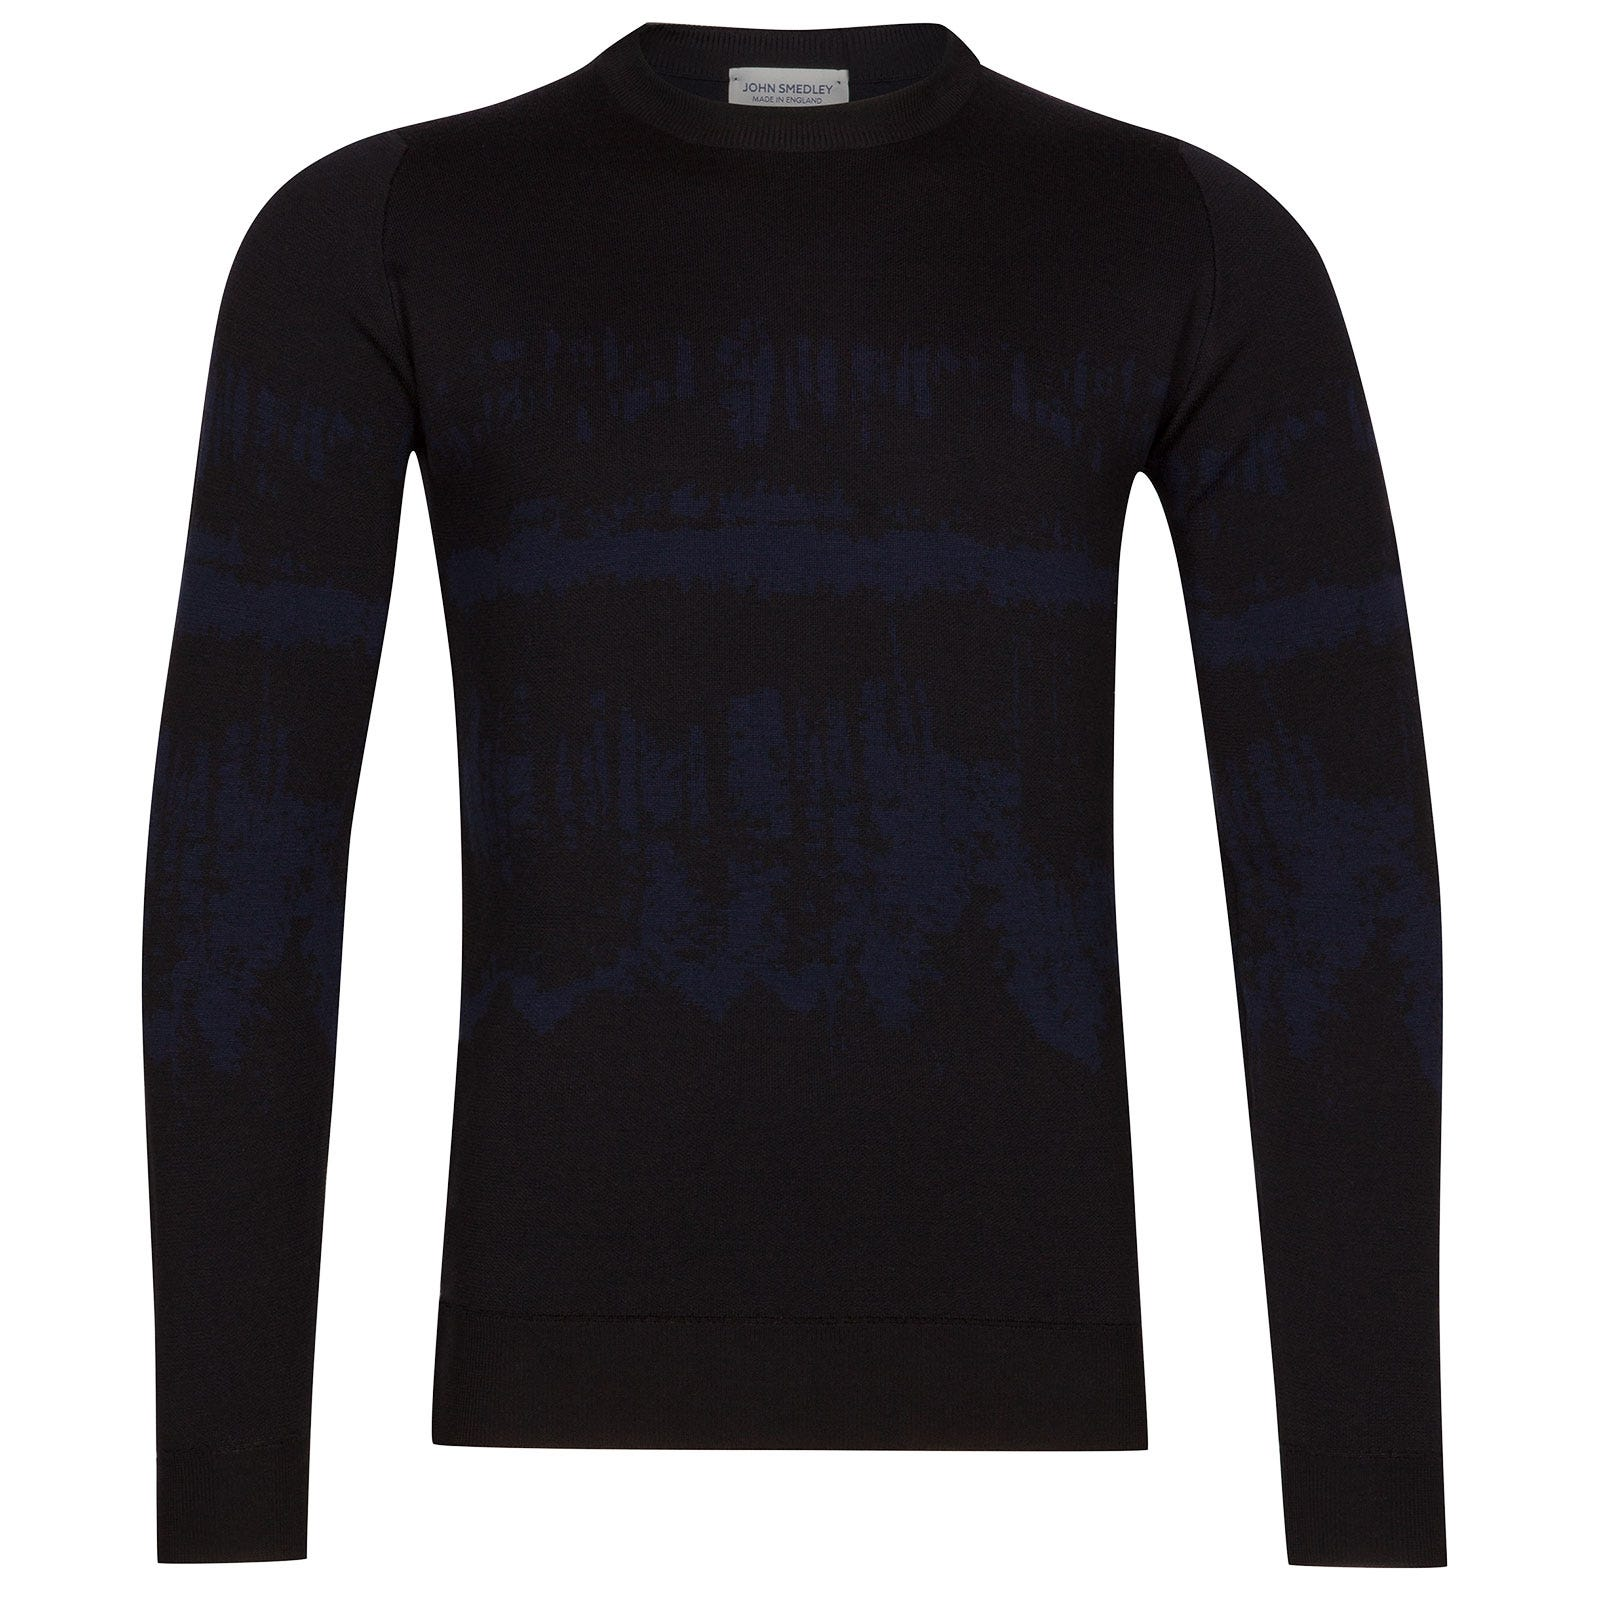 John Smedley girling Merino Wool Pullover in Black/Midnight-S